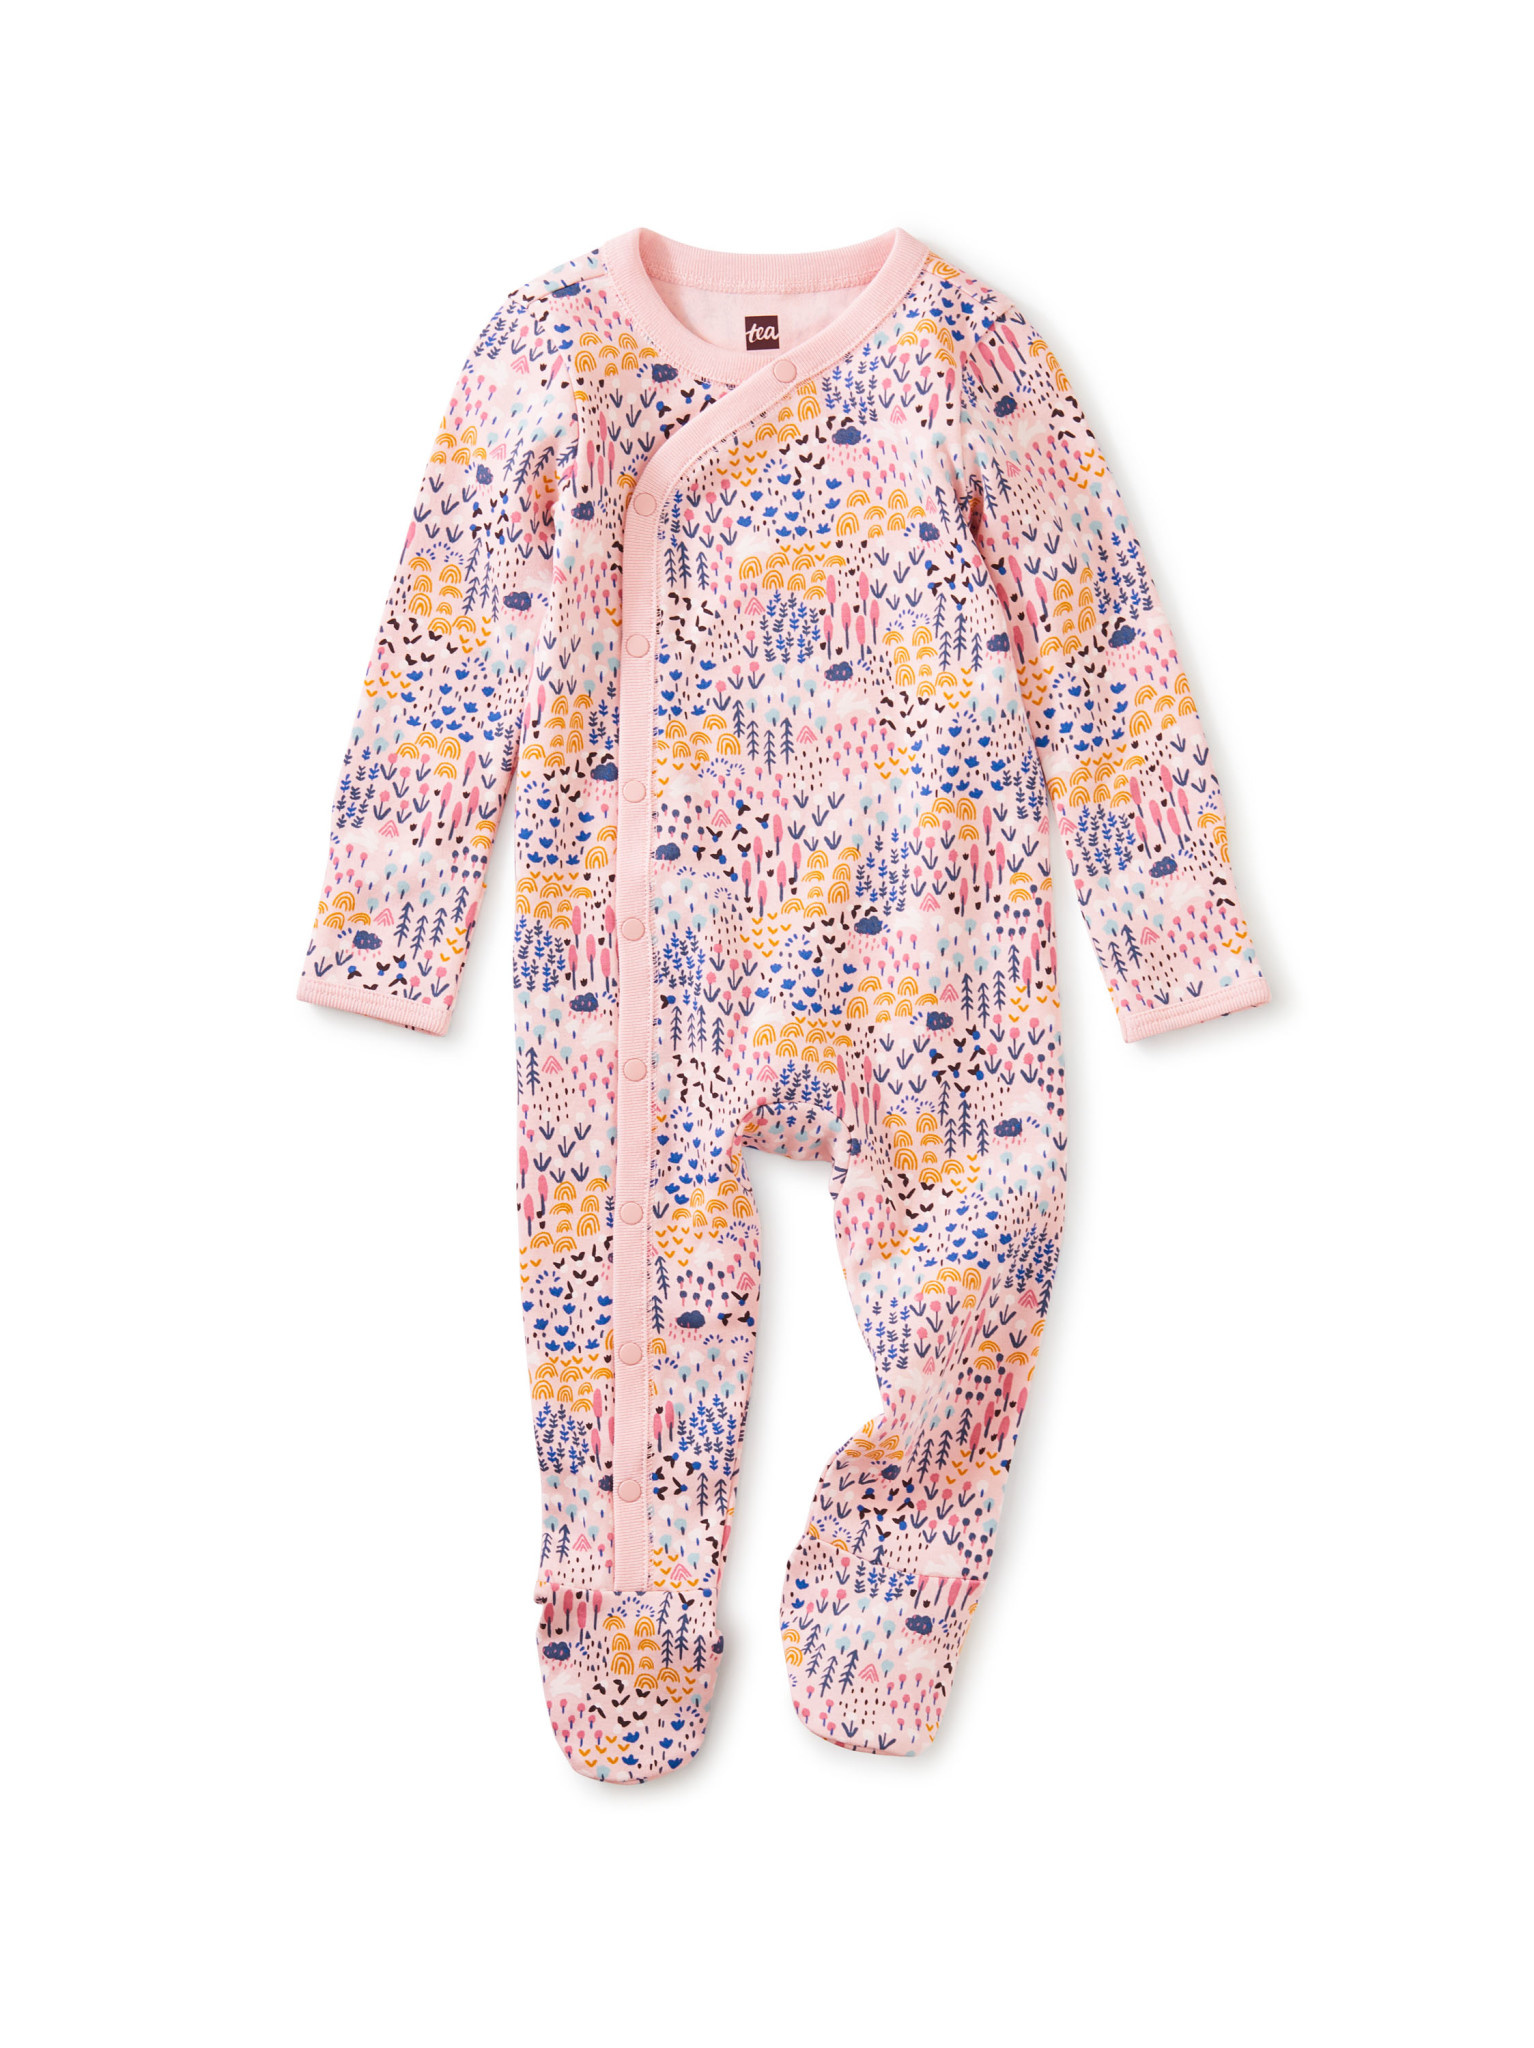 Tea Collection Footed Baby Romper - Rainbow Forest